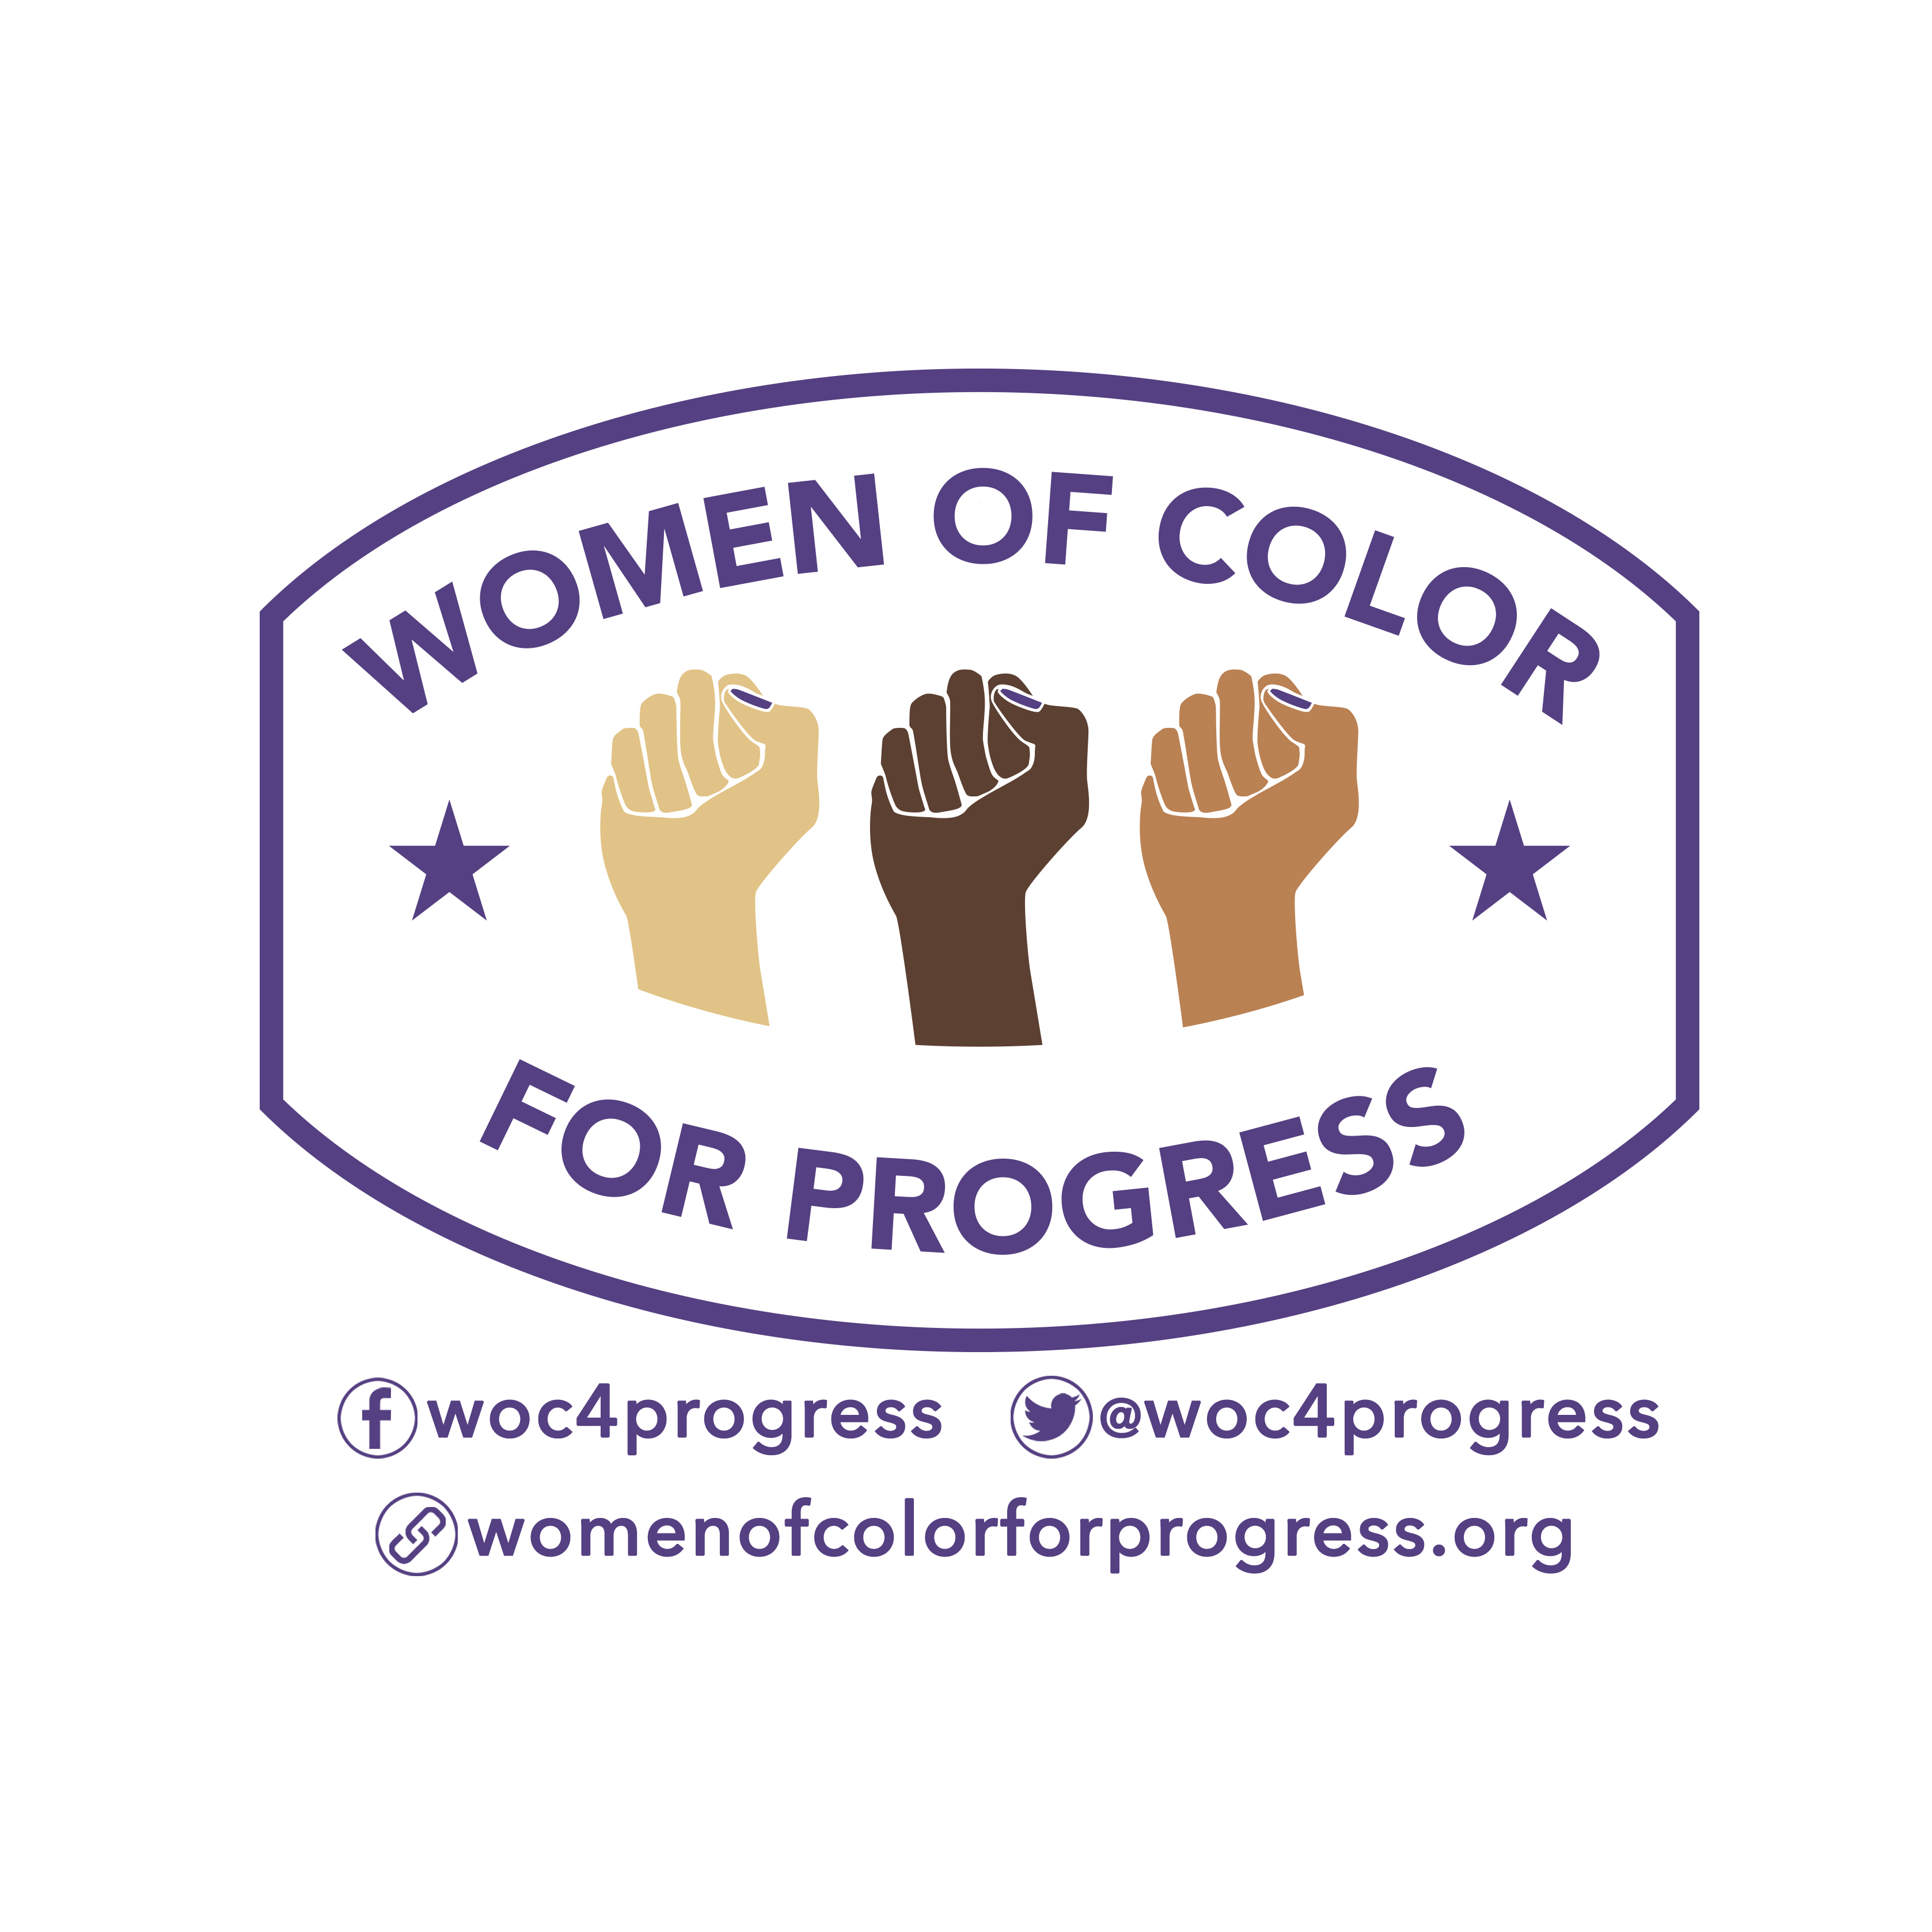 Women_of_Color_for_Progress.jpg